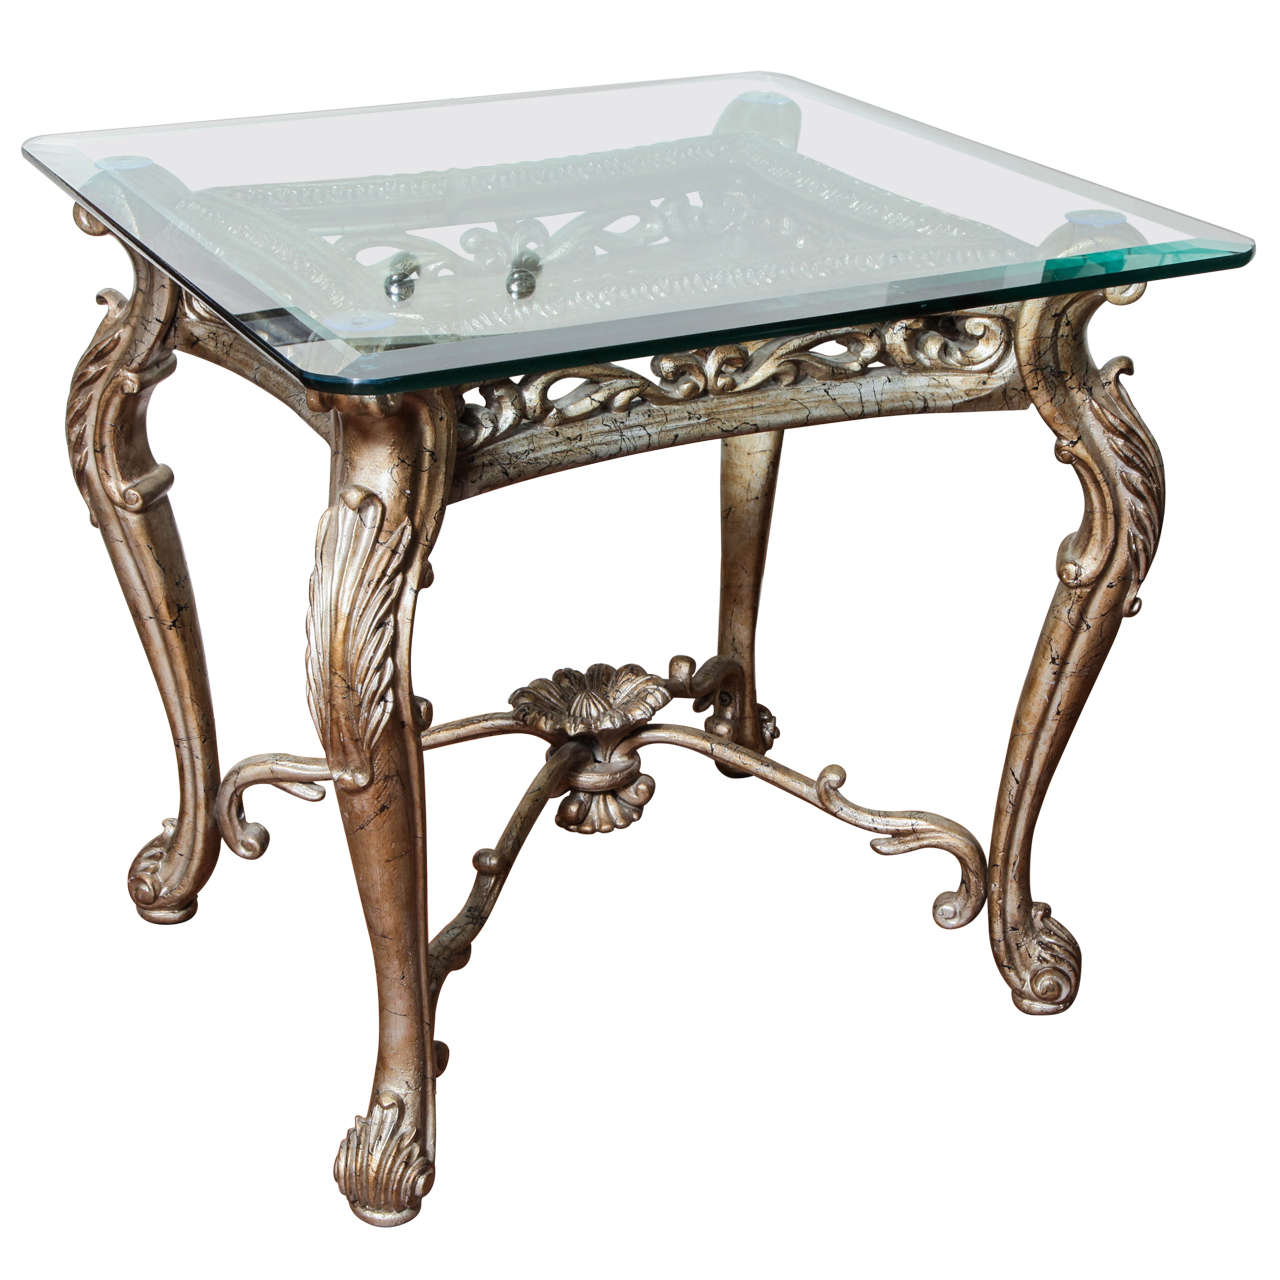 Antique Italian Rococo Gilt Silver Iron Square Side Table At Stdibs - Rococo side table